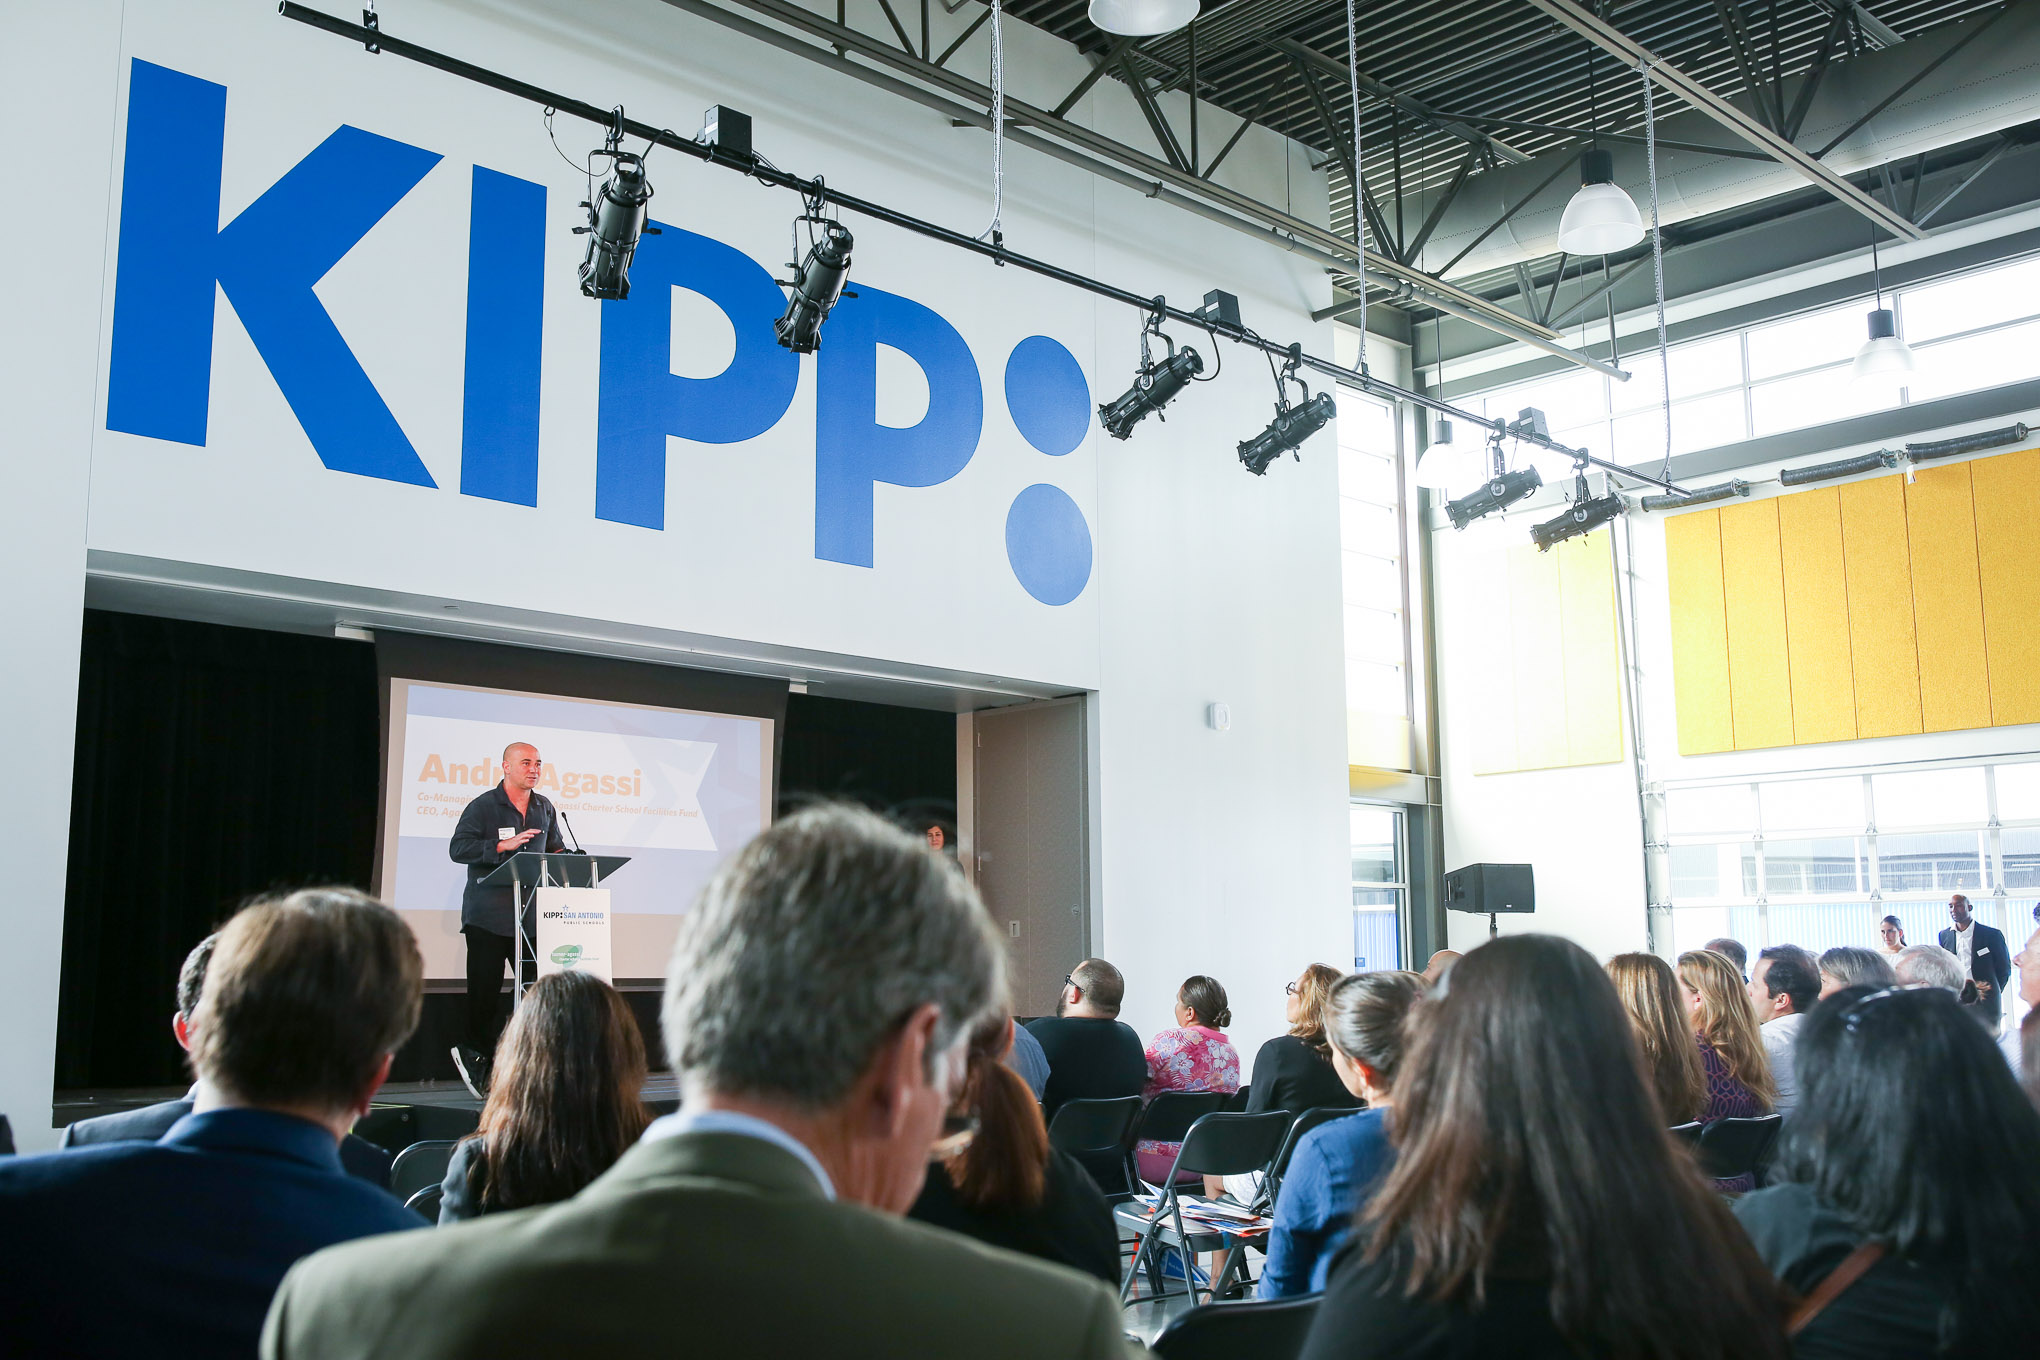 Andre Agassi addresses the audience at KIPP Cevallos. Photo by Scott Ball.